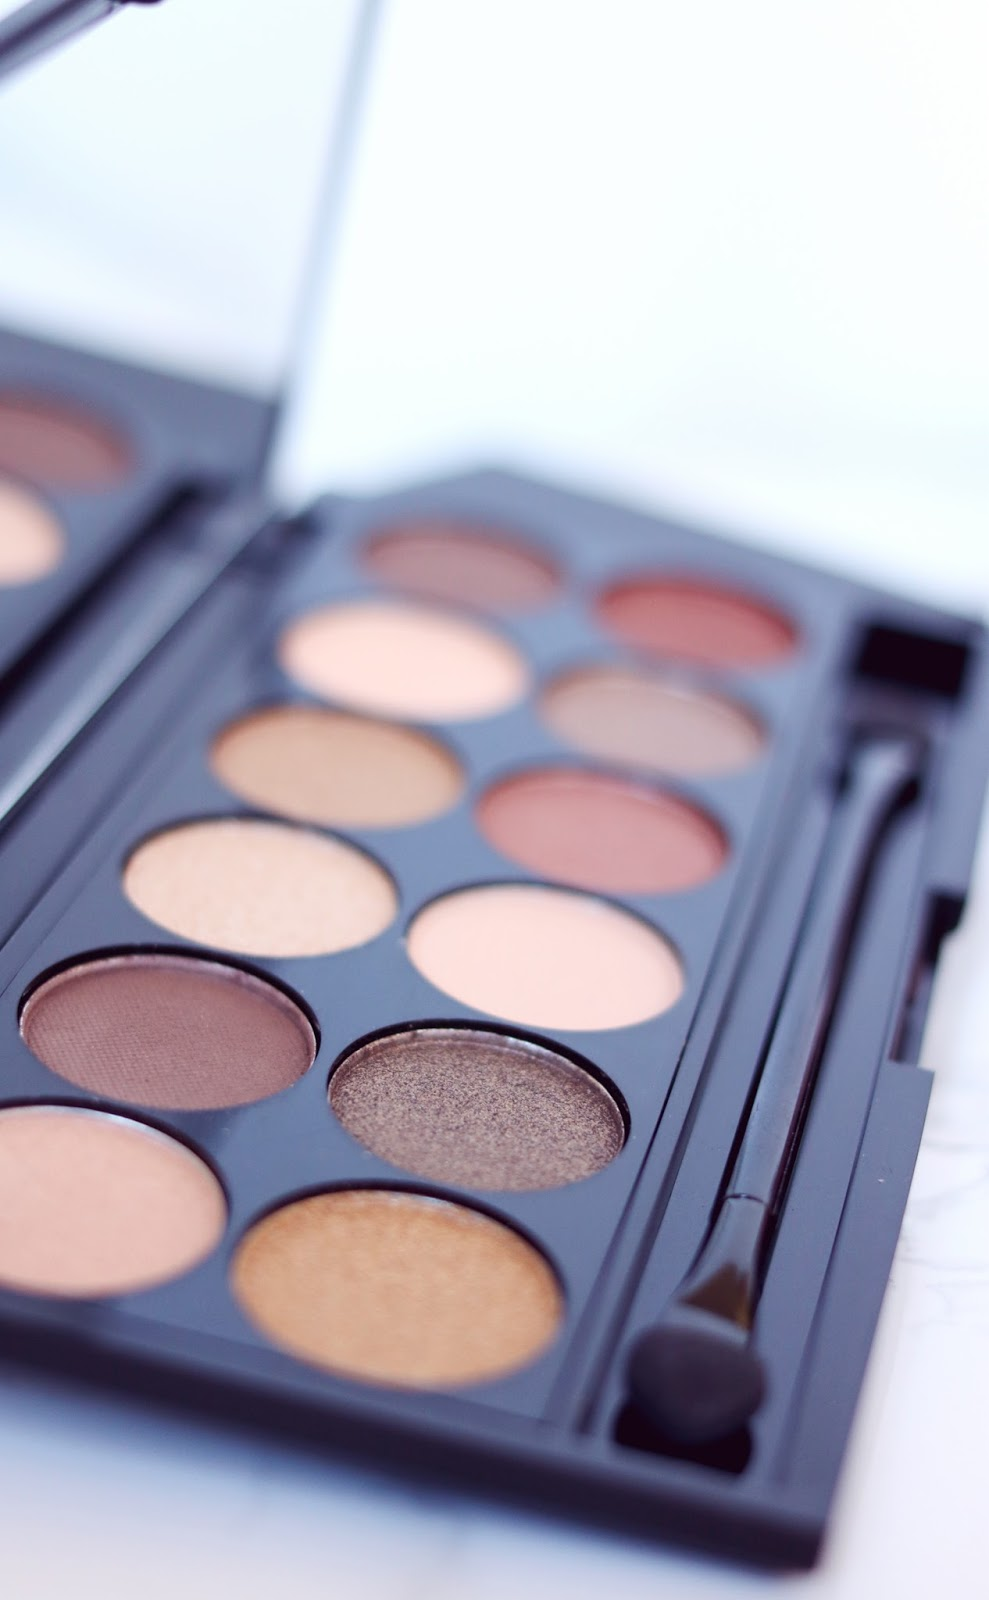 Sleek Makeup i-Divine Eyeshadow Palettes